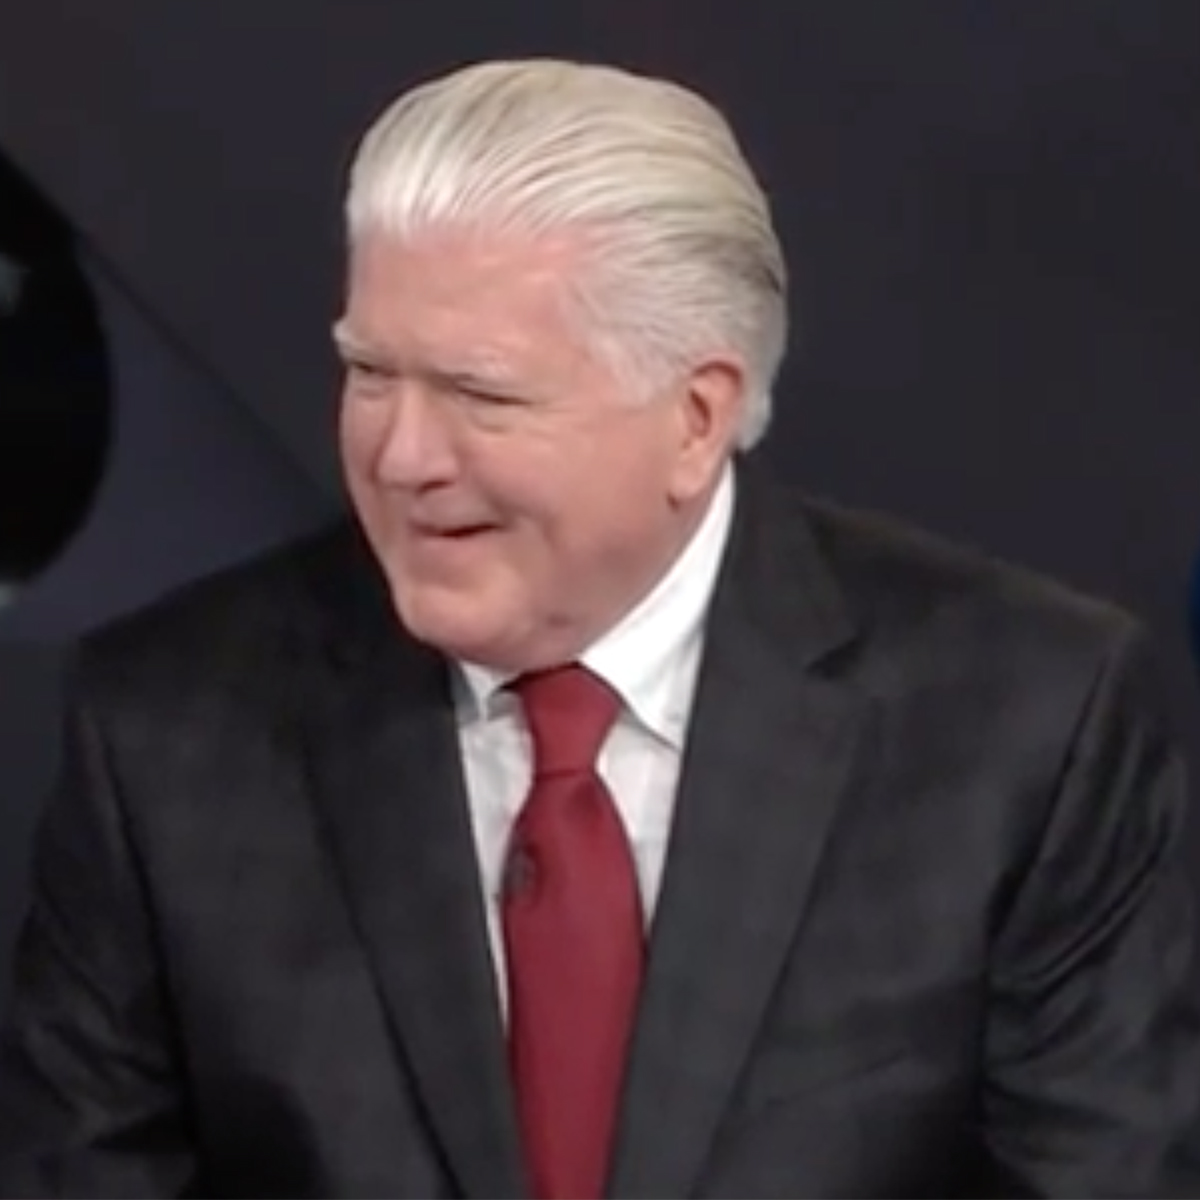 Brian Burke tells the awesome story from the NHL Draft 2012.